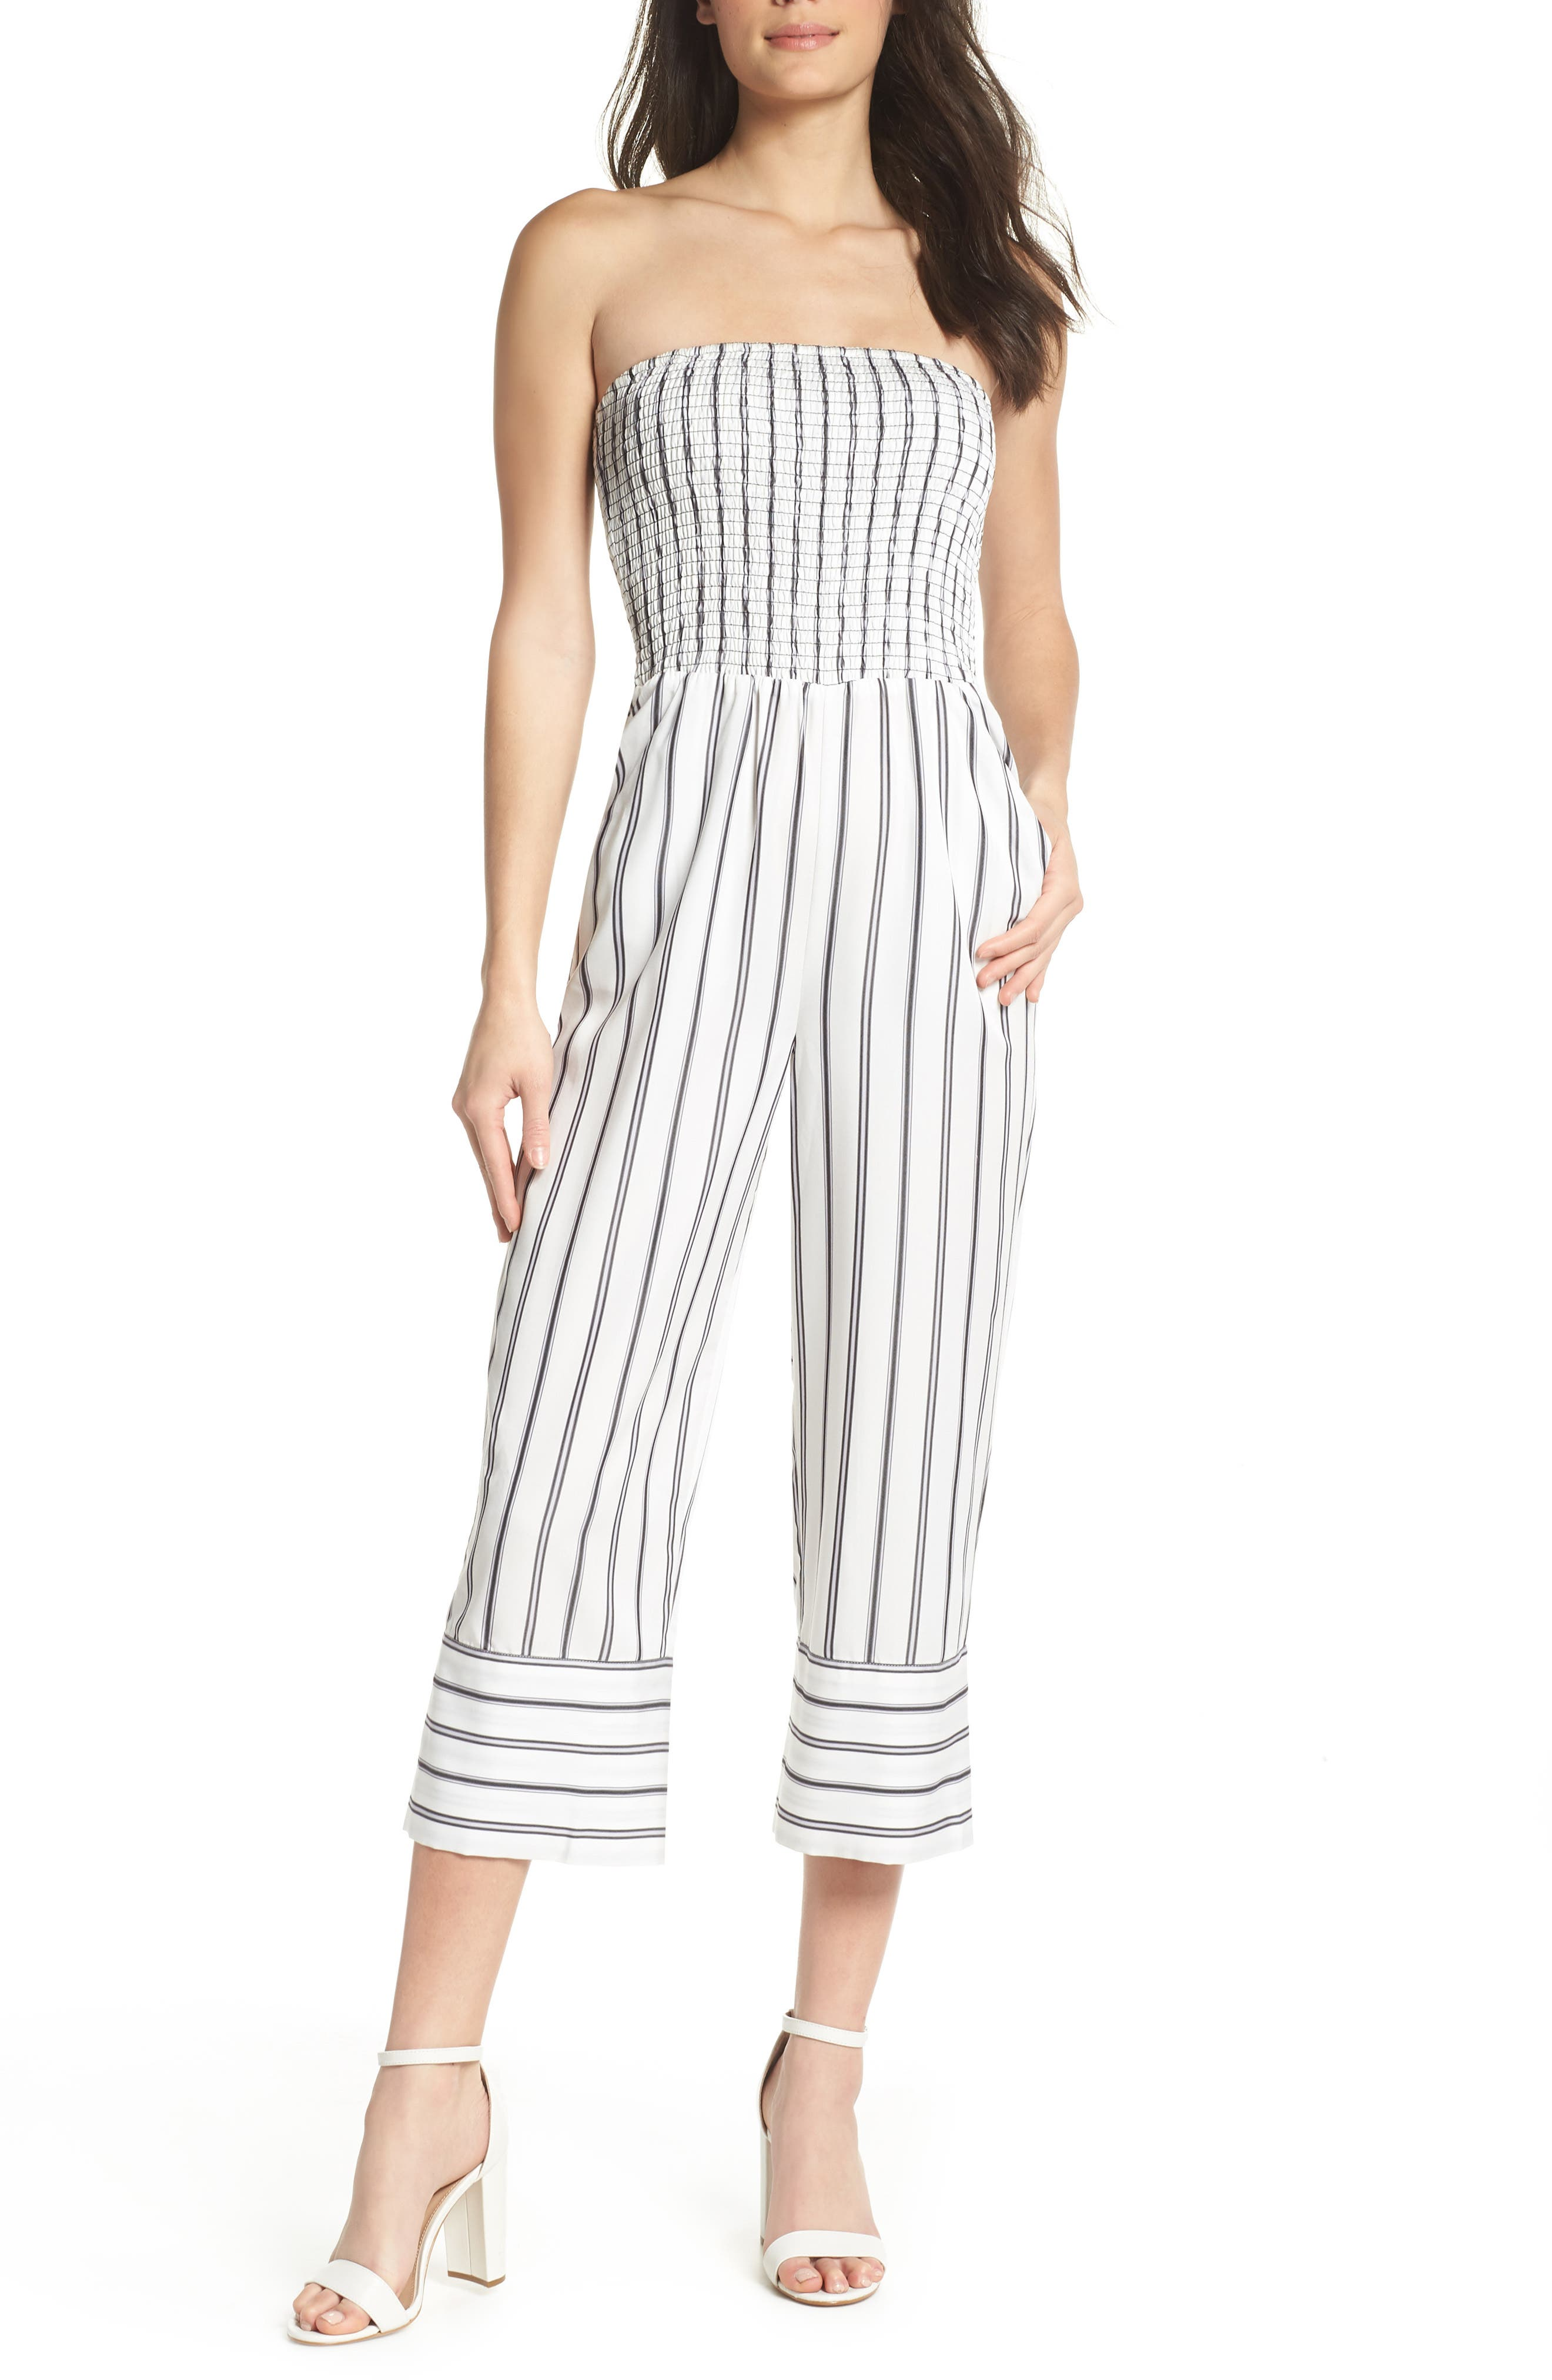 Get in the Grove Stripe Strapless Jumpsuit,                             Main thumbnail 1, color,                             169